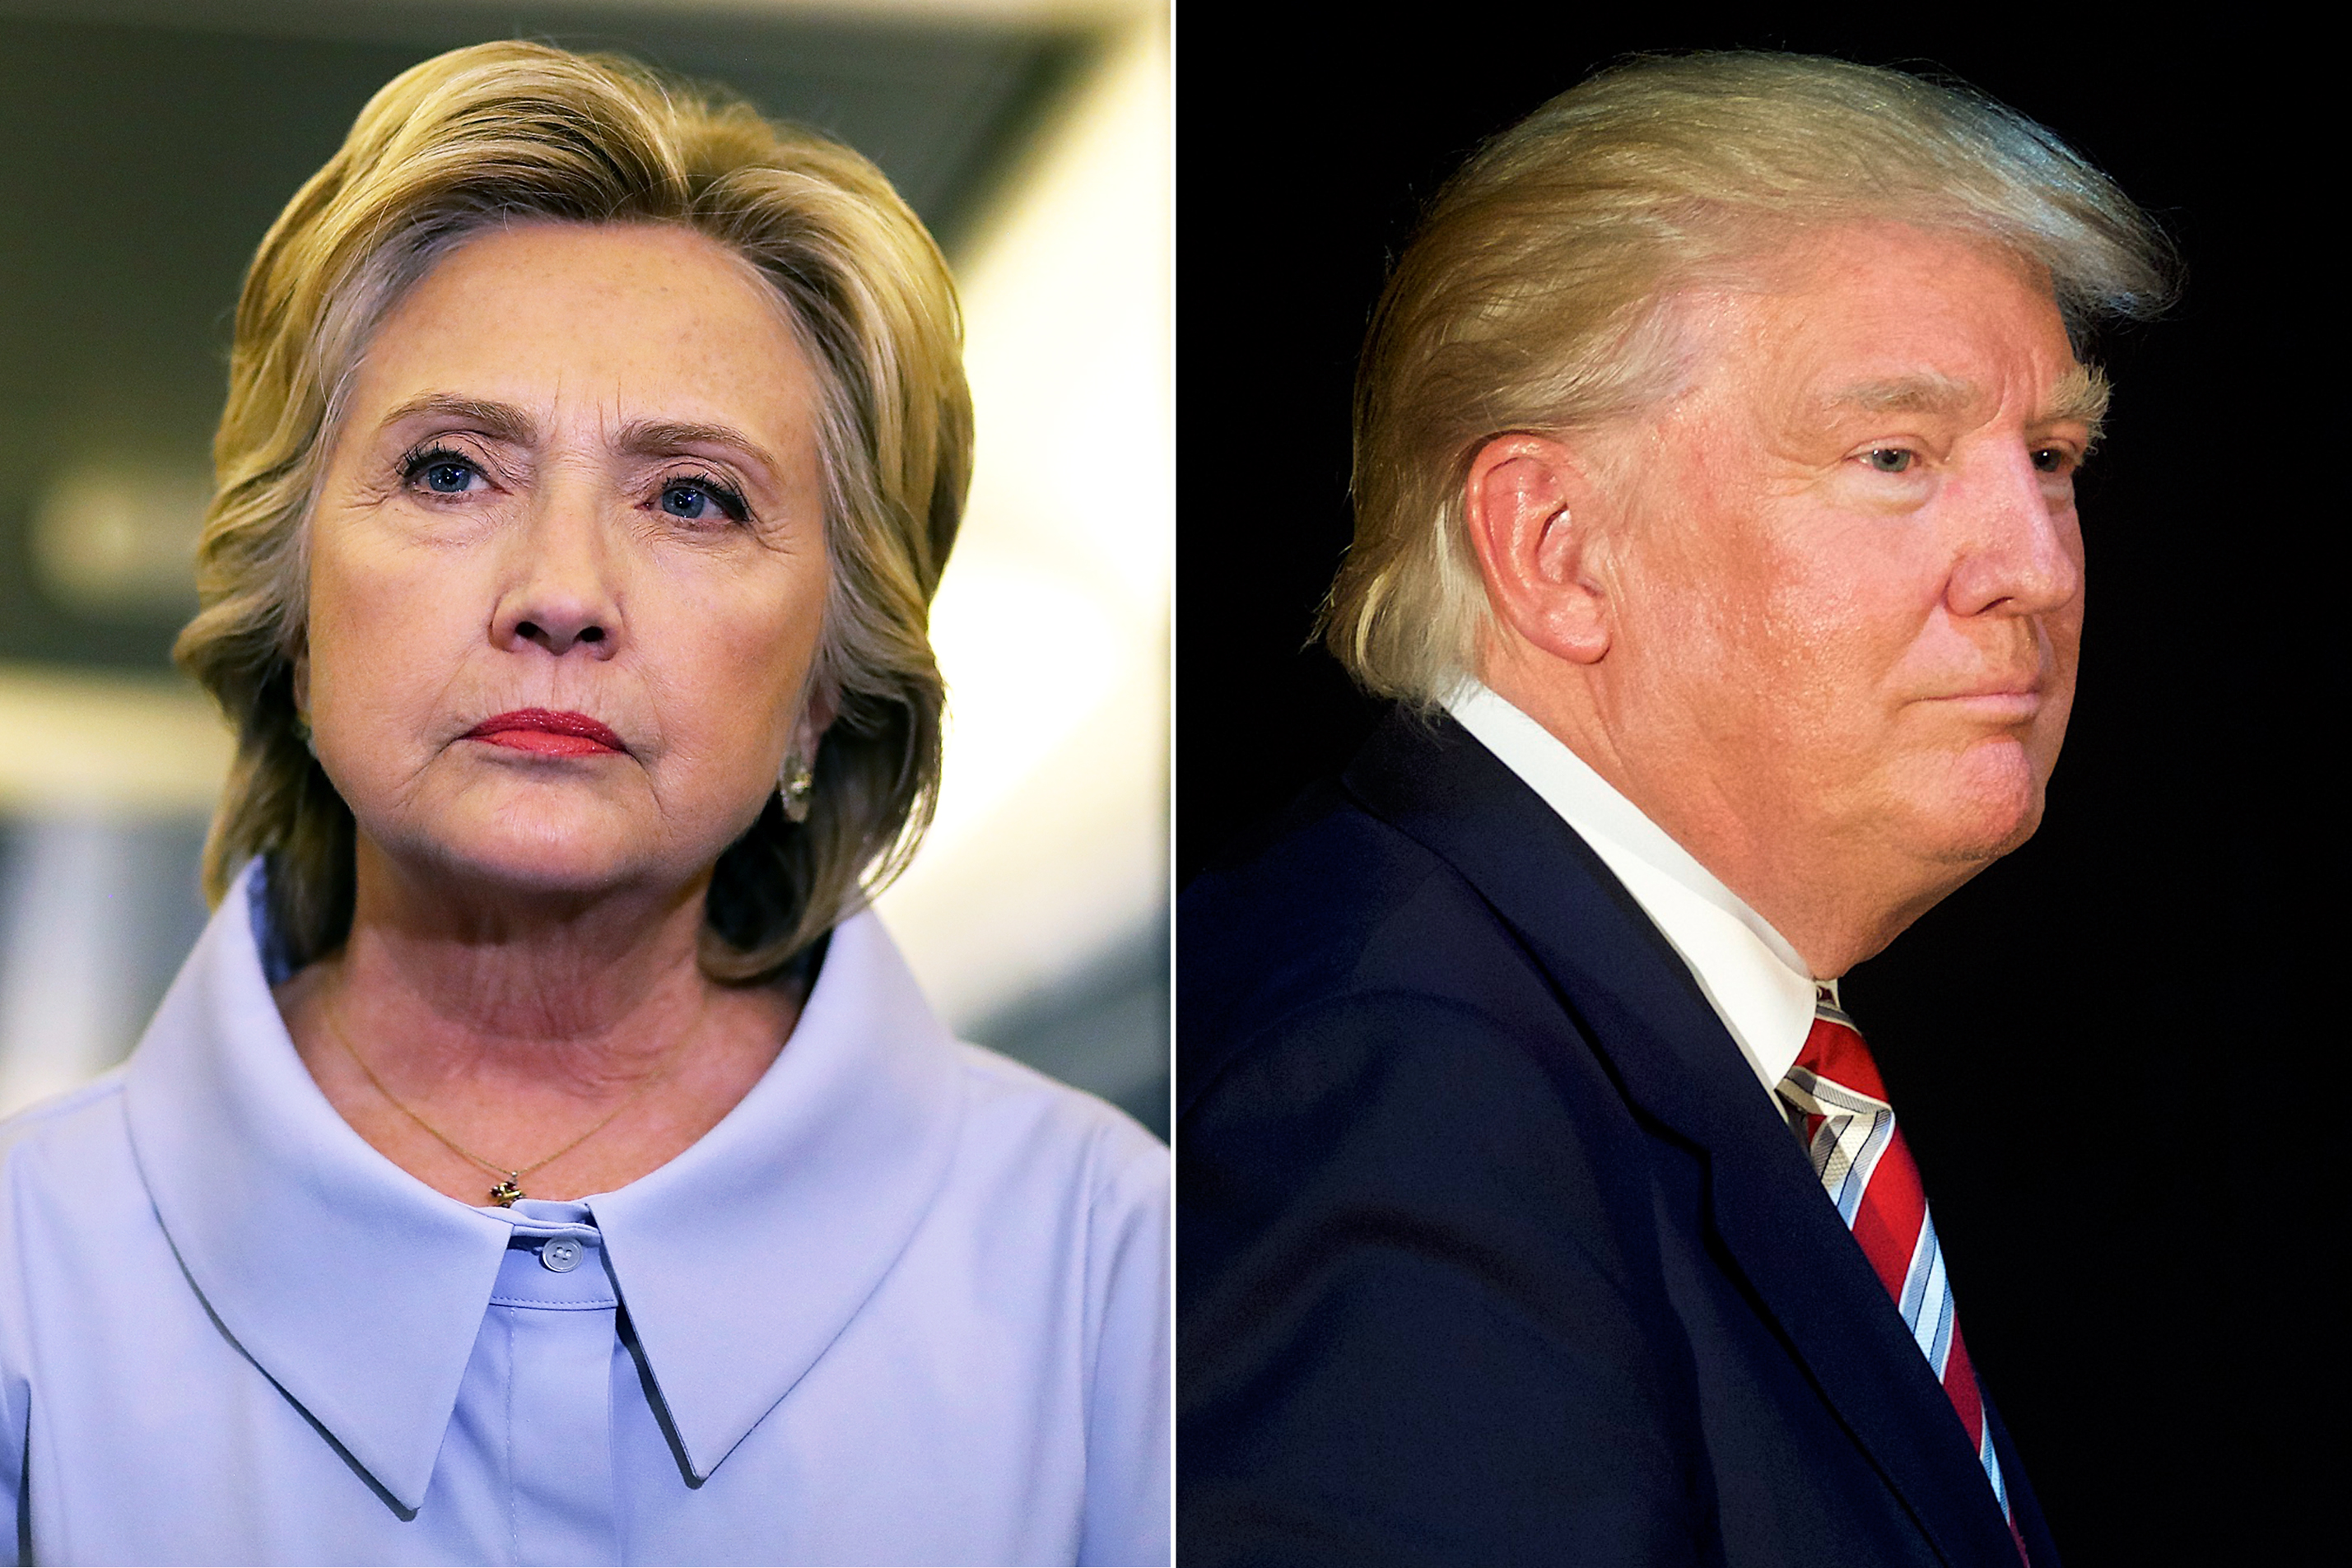 Hillary Clinton in Iowa. on Sept. 5, 2016 (L); Donald Trump in Aston, PA, on Sept. 13, 2016.